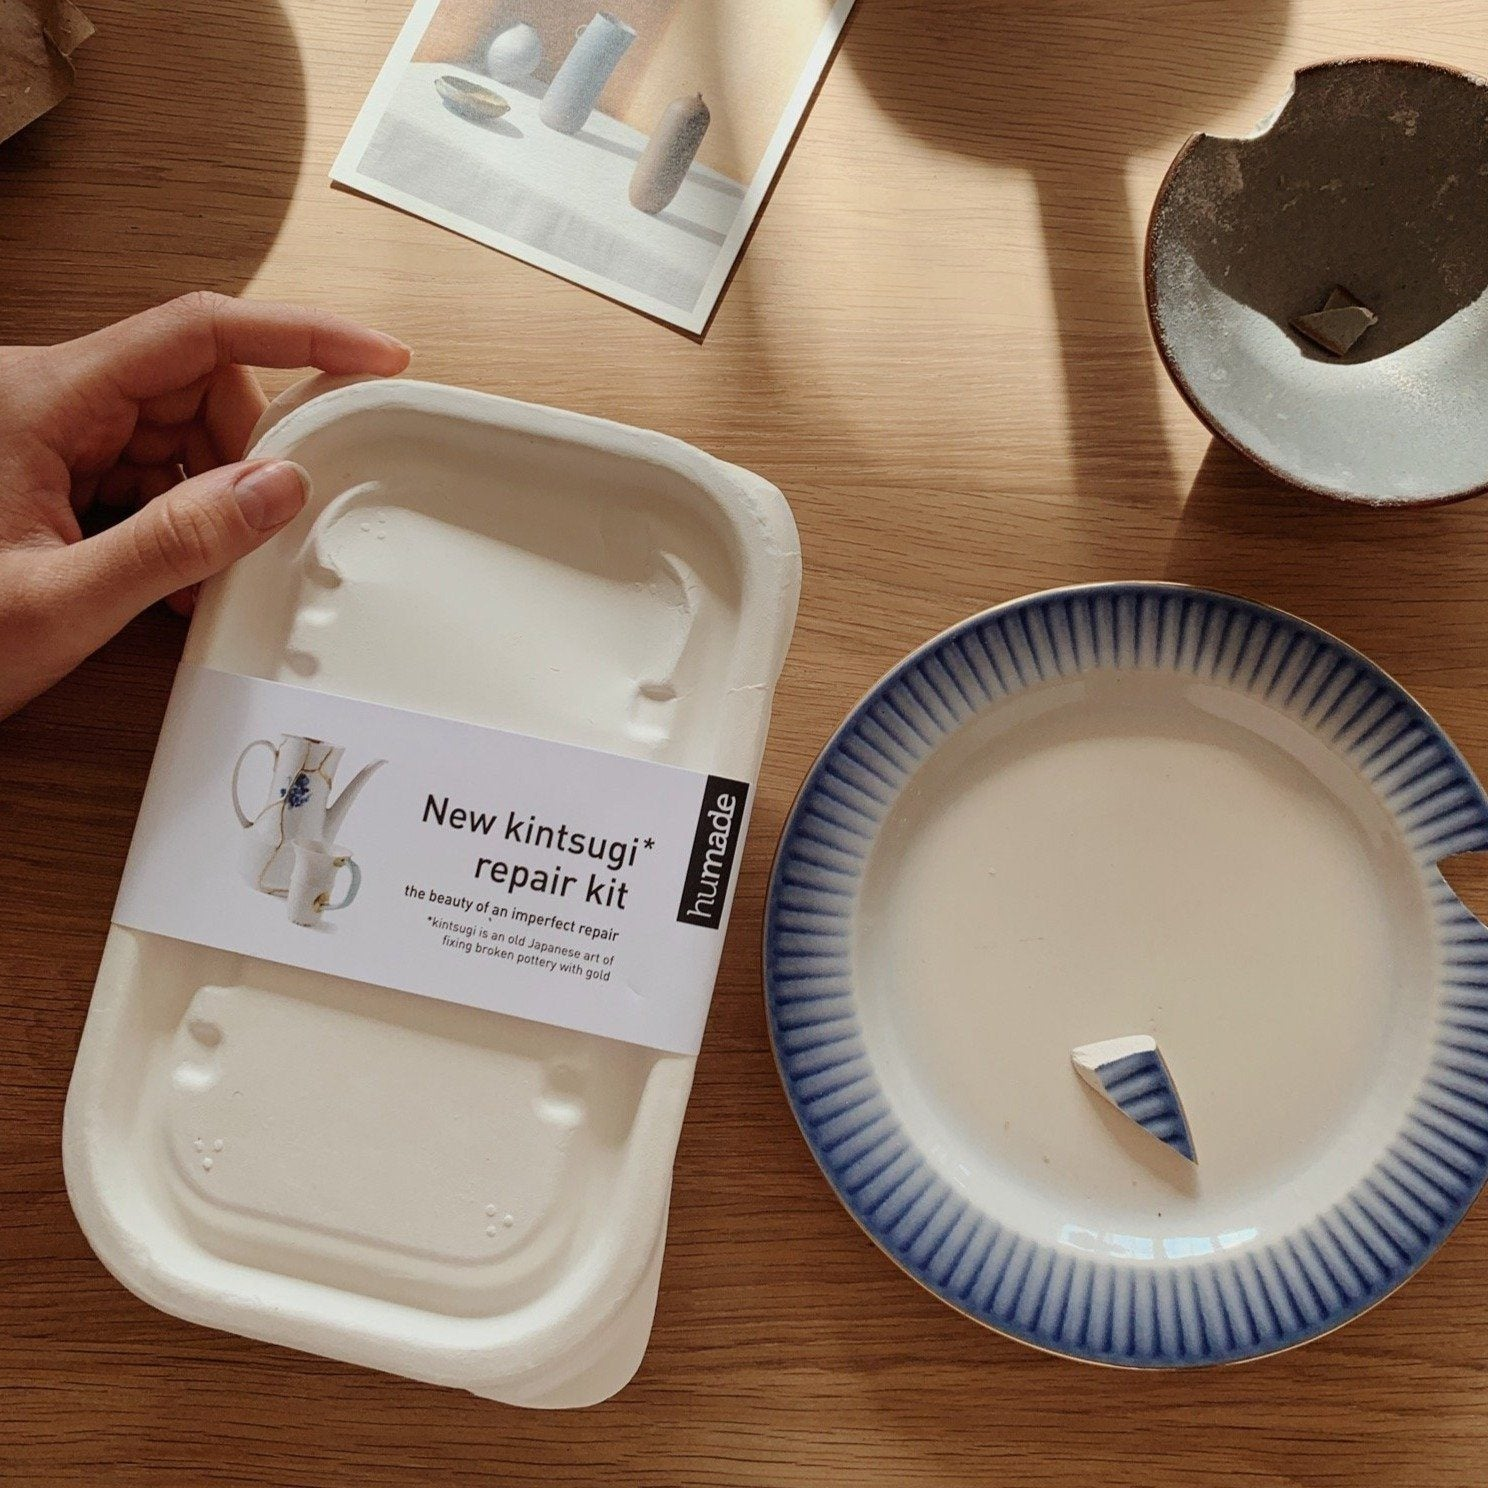 Kintsugi porcelain repair kit